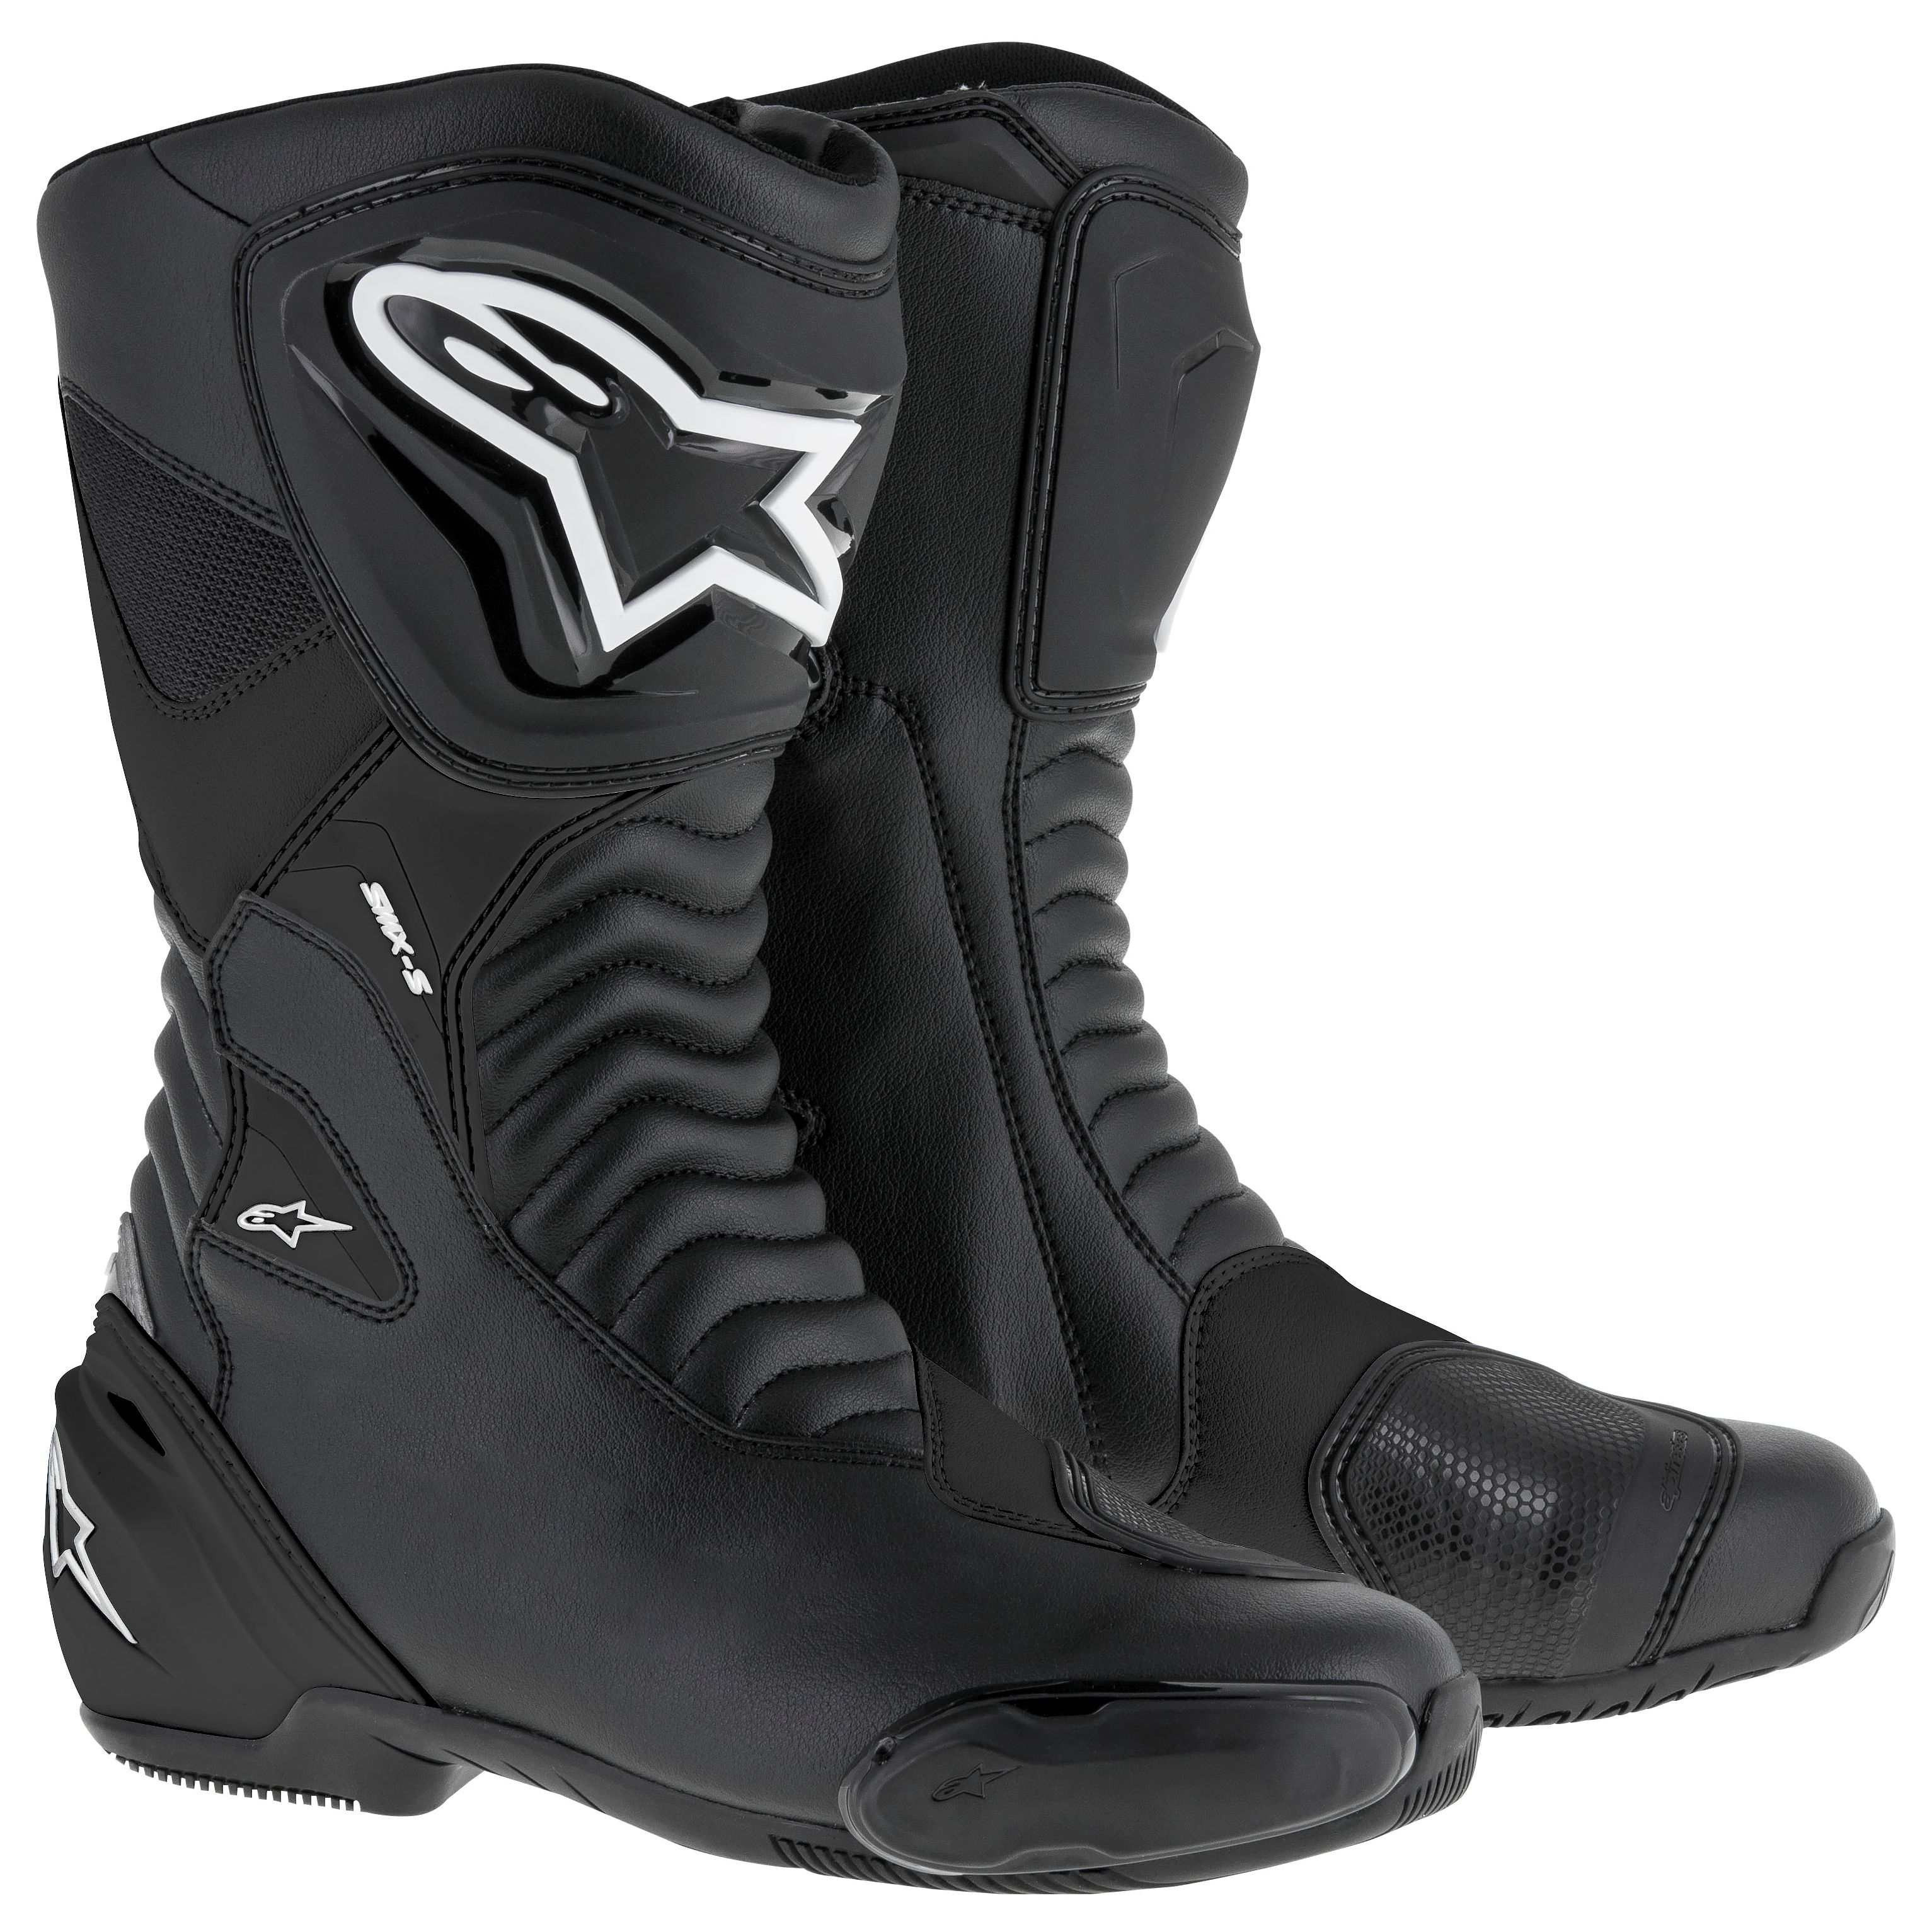 bottes alpinestars smx s bottes et chaussures. Black Bedroom Furniture Sets. Home Design Ideas